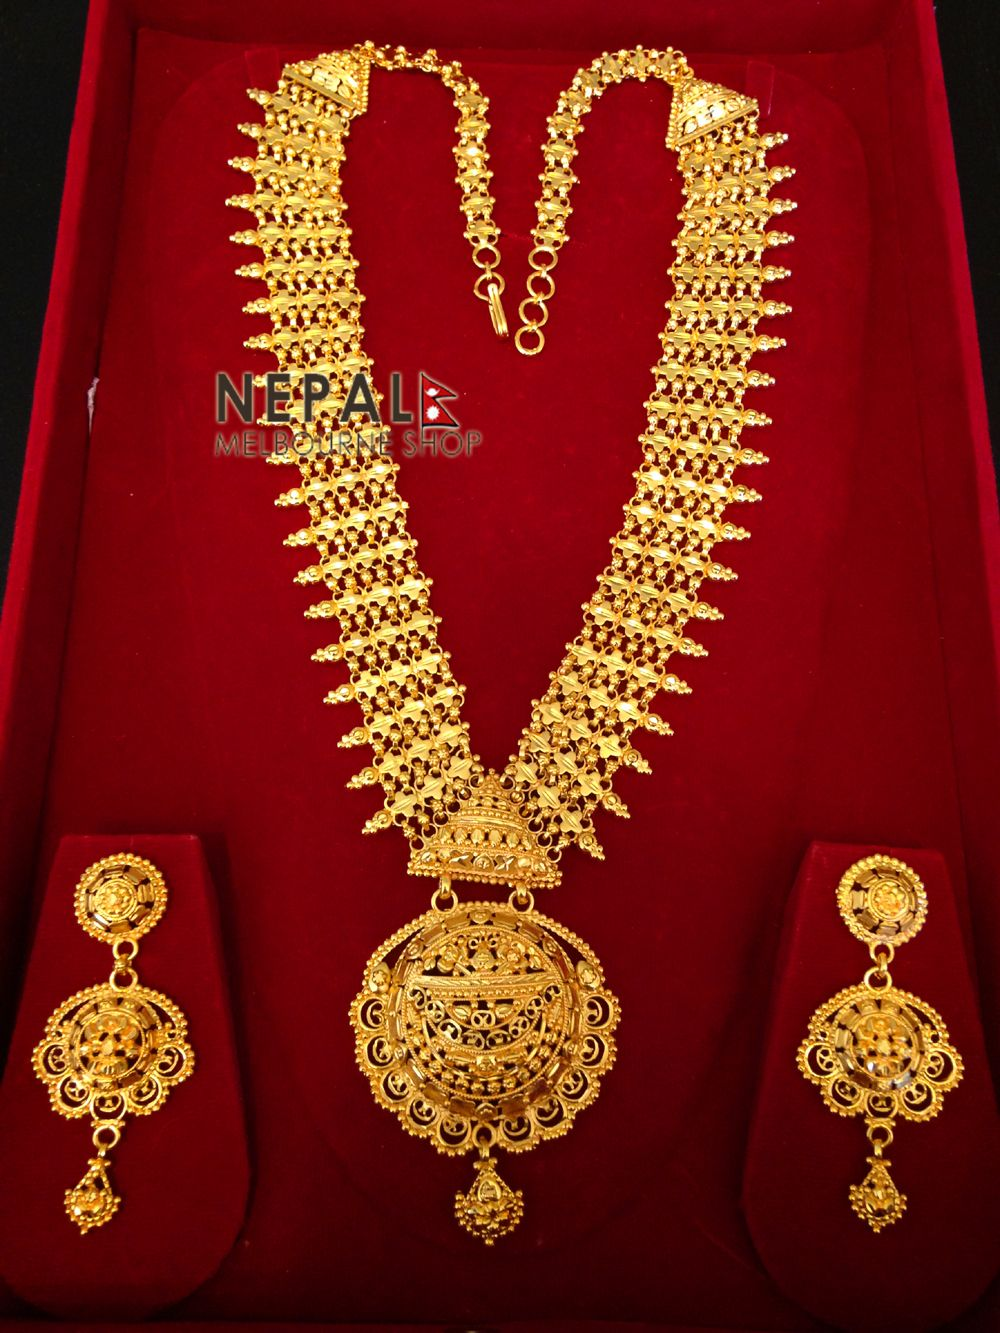 Gold rani haar pictures to pin on pinterest - Raani Haar Pearl Google Search